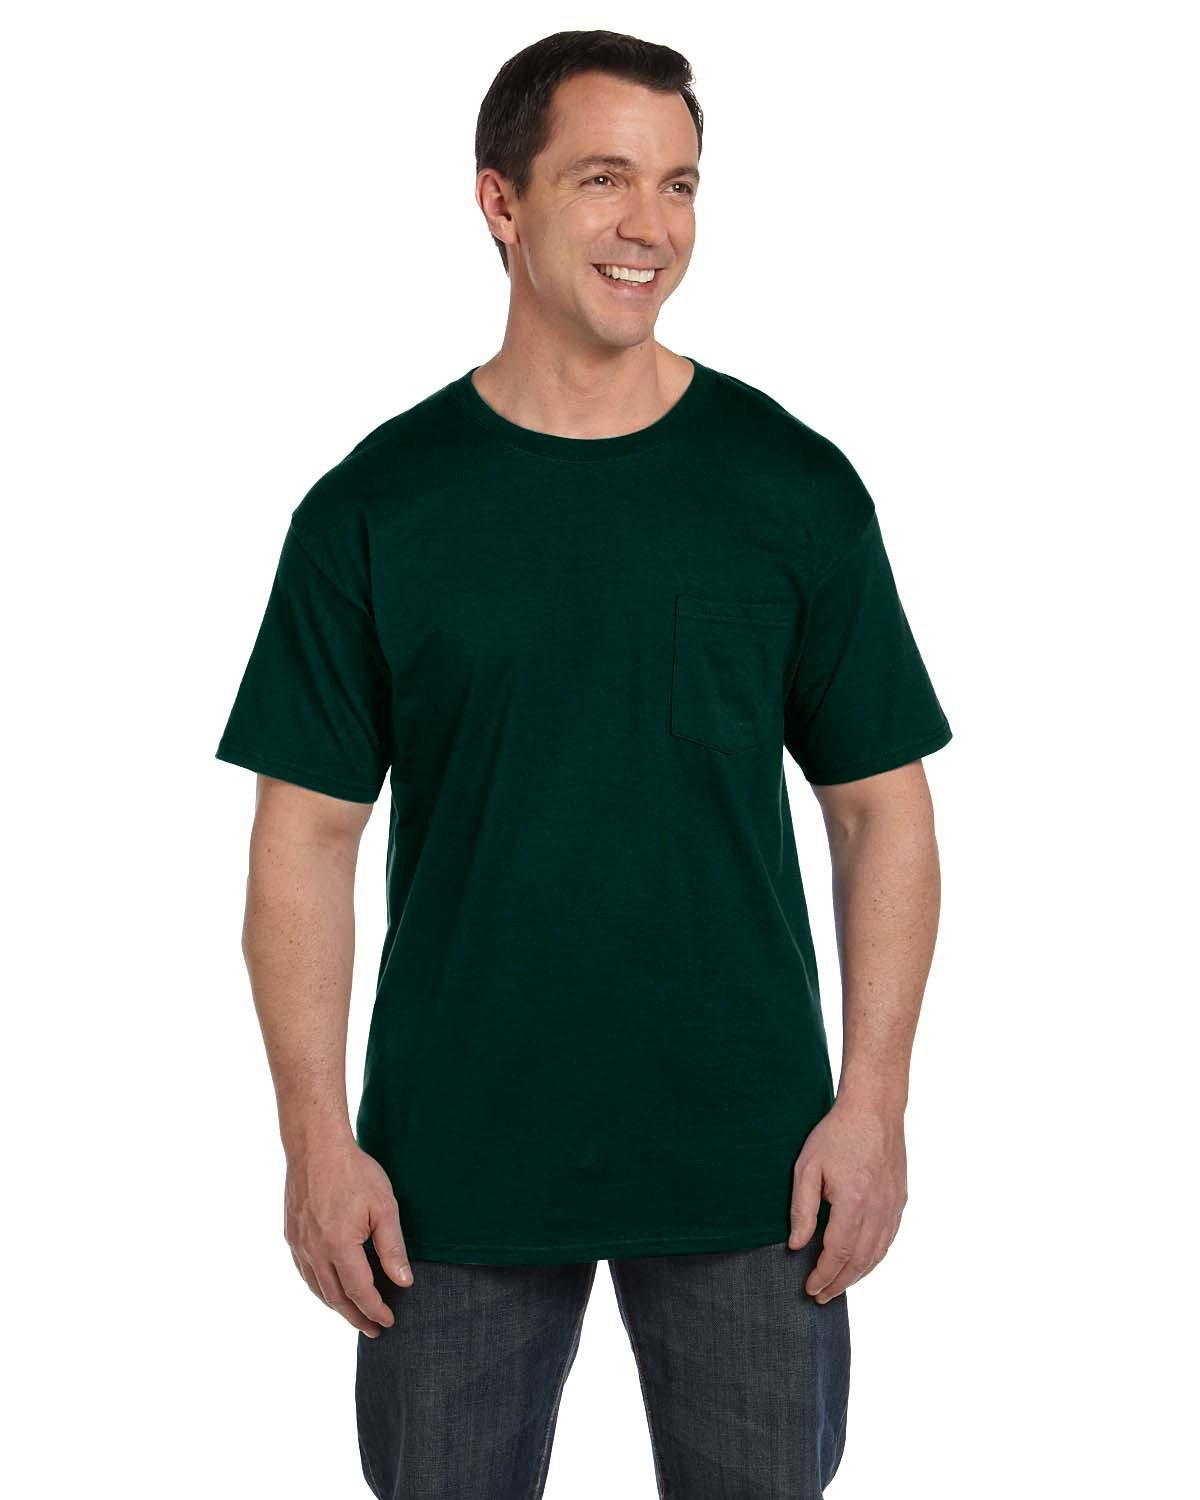 Hanes Adult Beefy-T® with Pocket DEEP FOREST